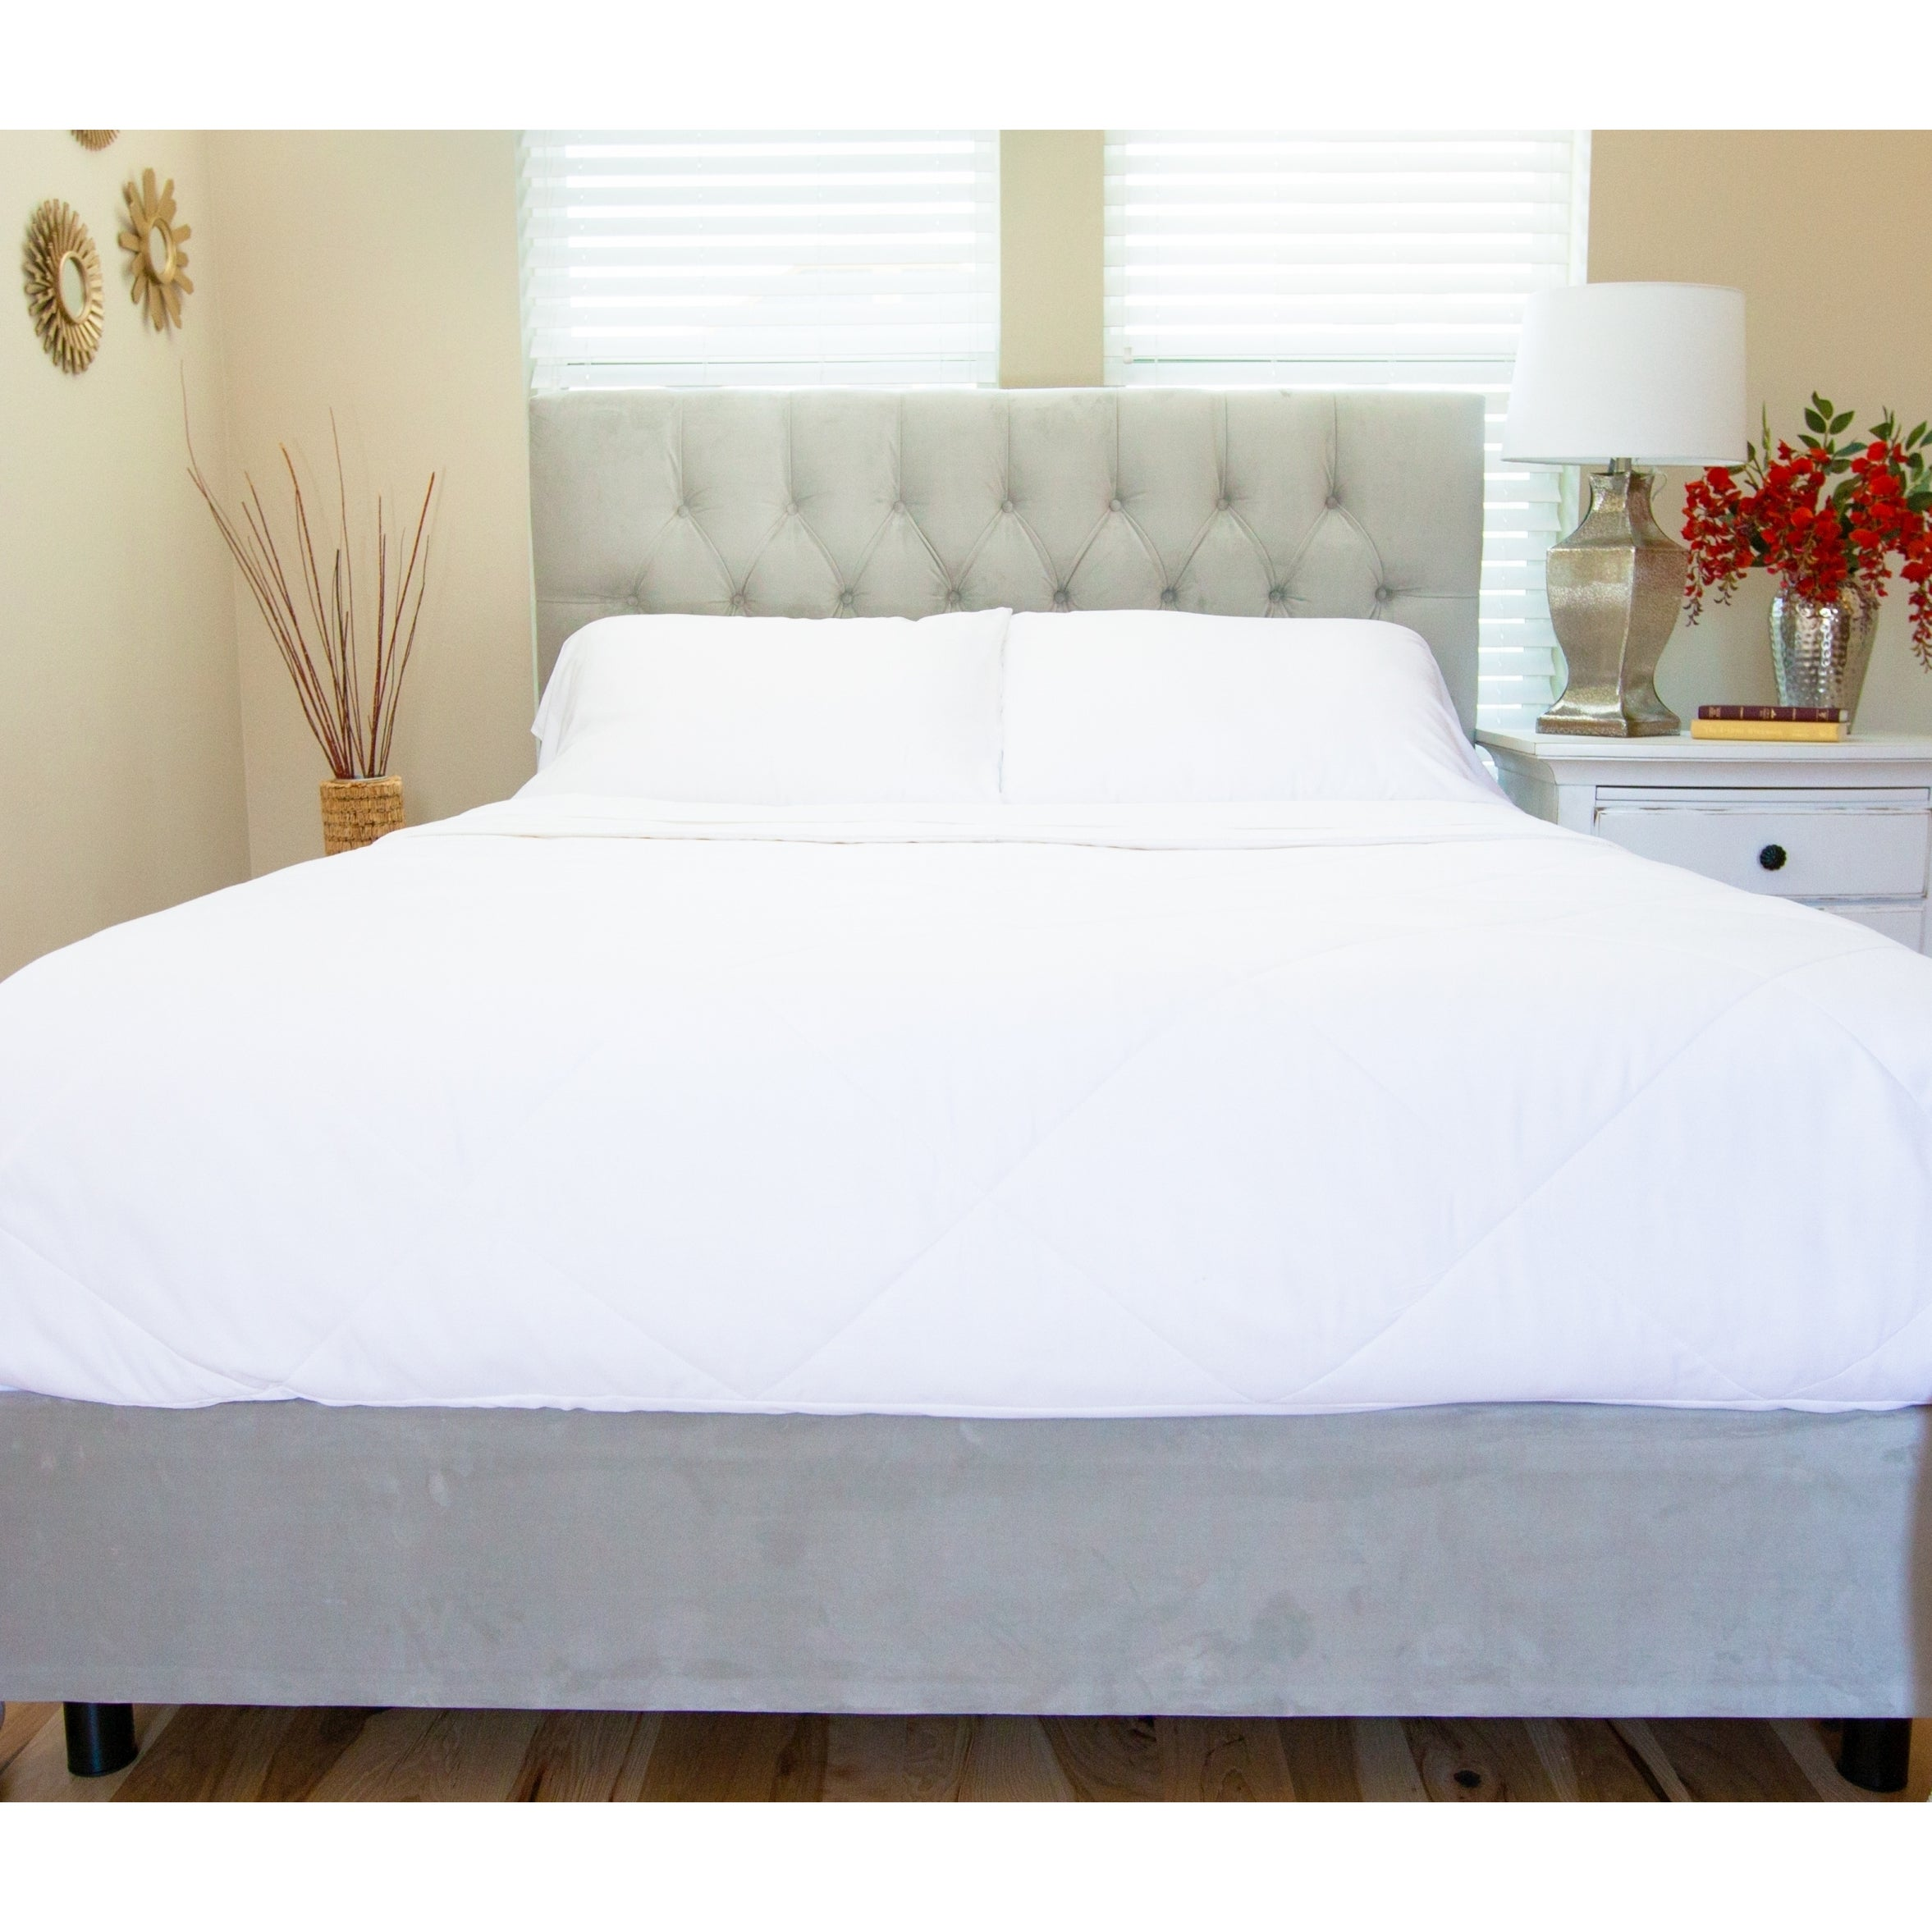 satin buy fitted green sheets mulberry navy gold where sets bedding black sale silk blush online cheap quilts queen rose washed blanket bed to blue cotton price egyption bedroom bedspread white beds for set size comforter